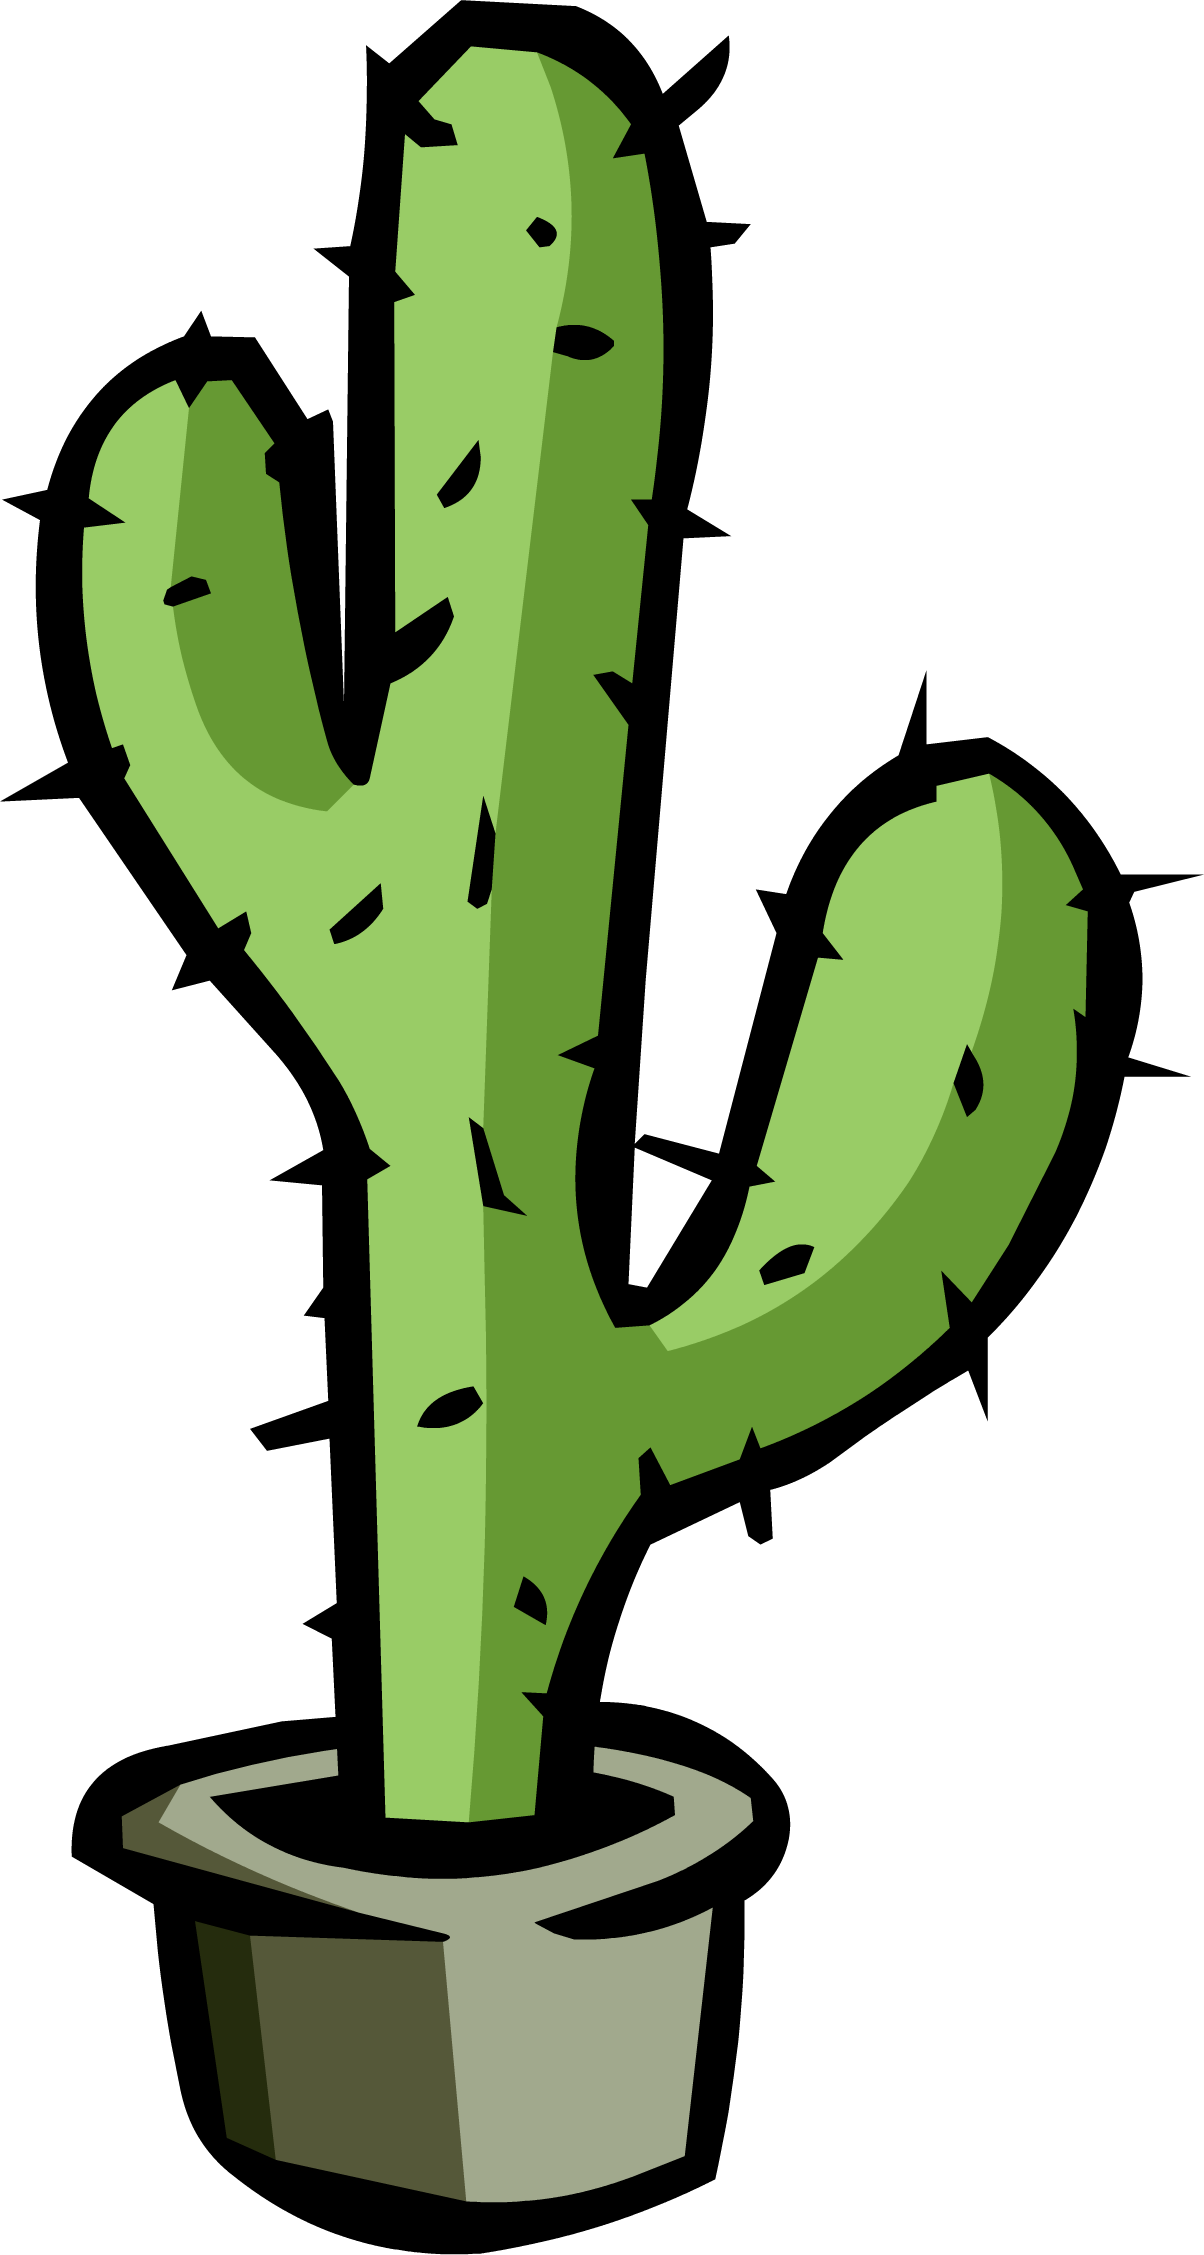 cactus cartoon png